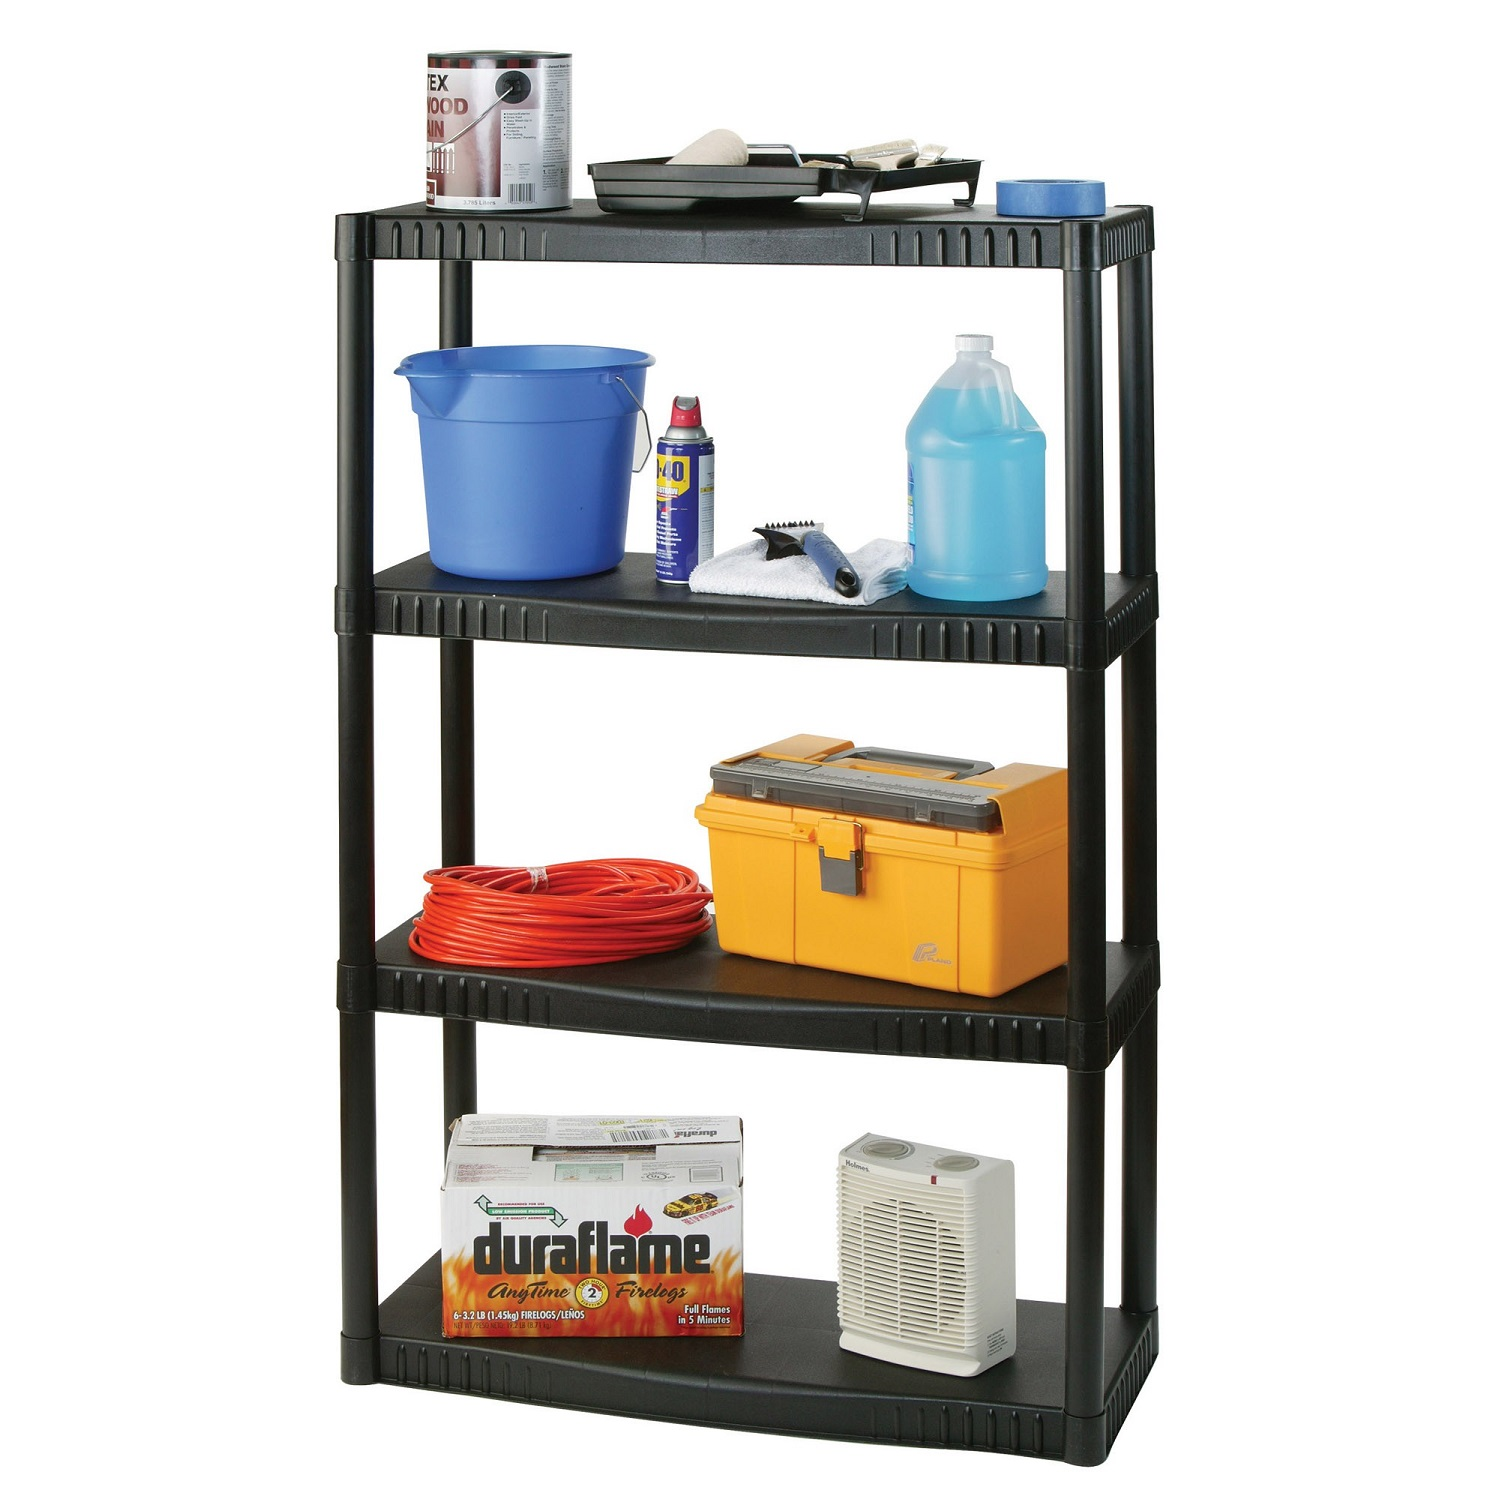 "Plano Molding 4 Shelf Shelving Unit  34.25""x 14.5"" - Black"